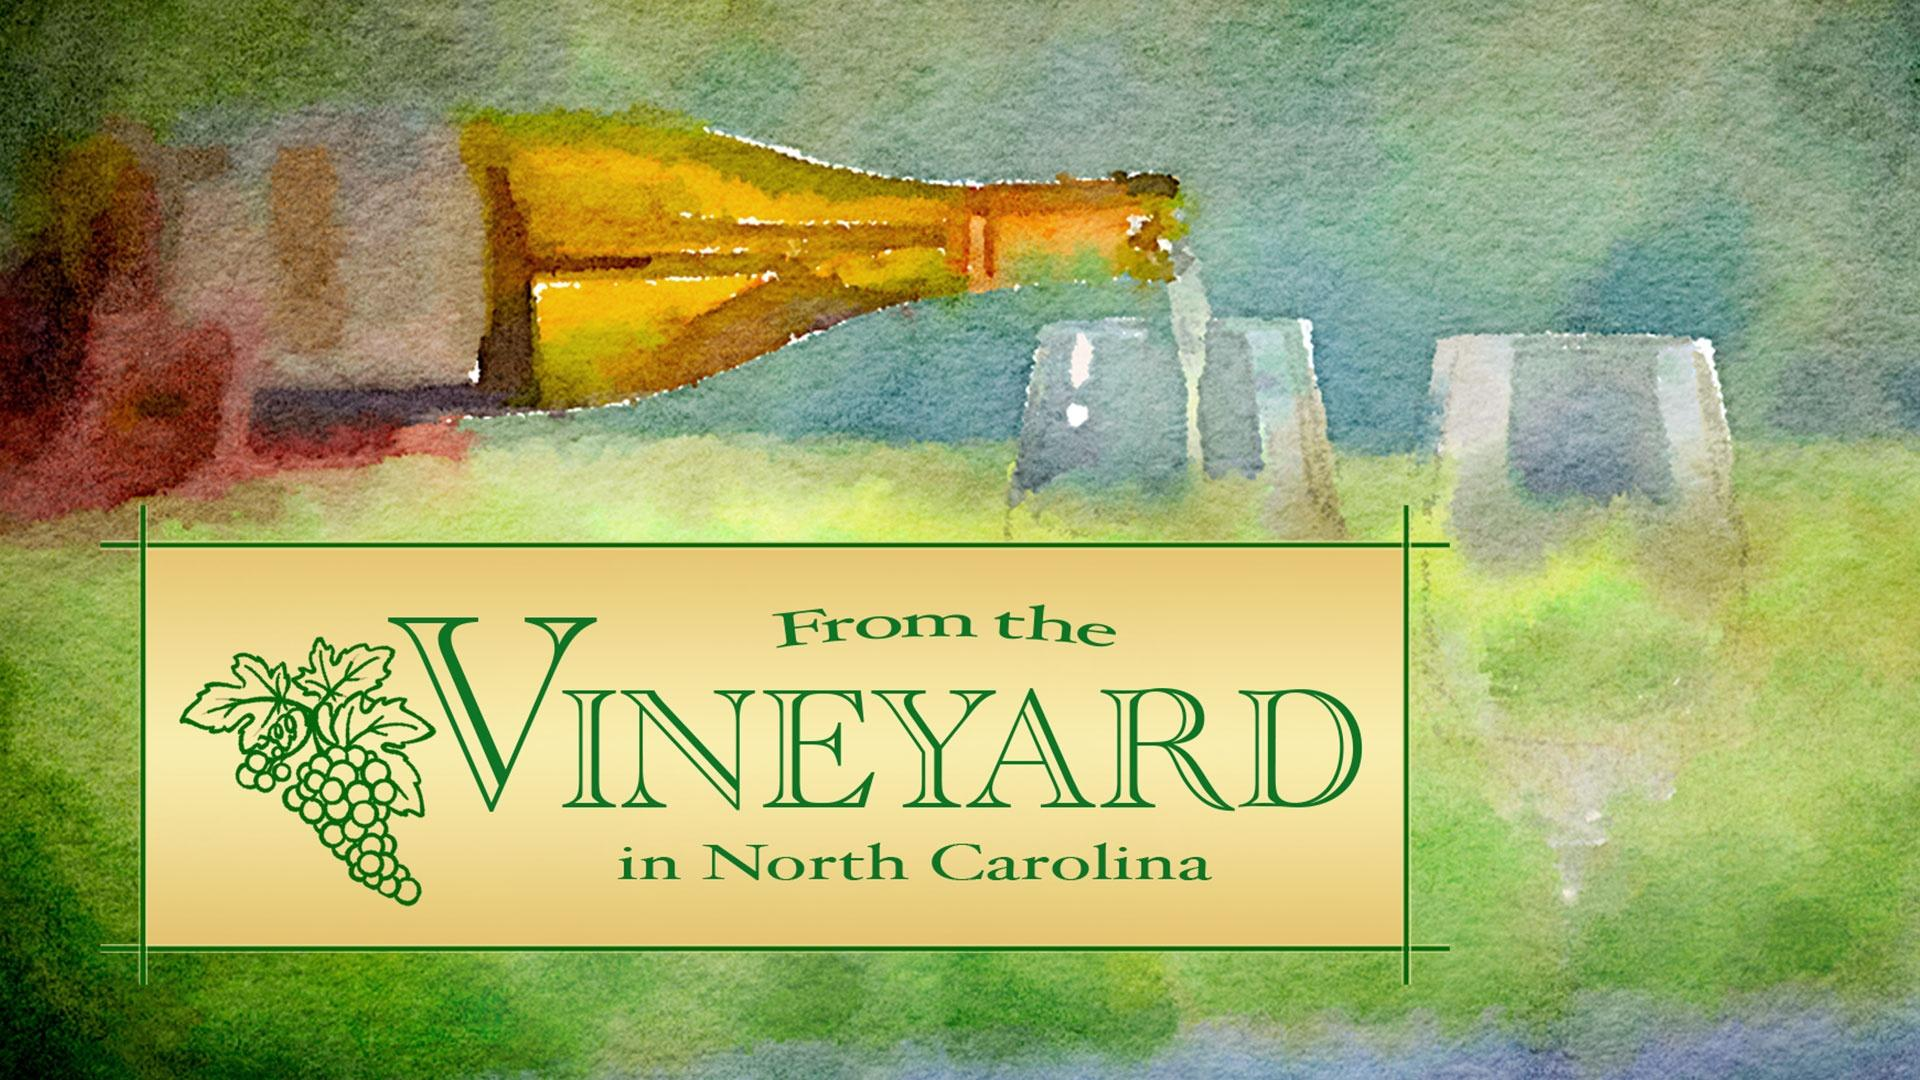 From the Vineyard in North Carolina